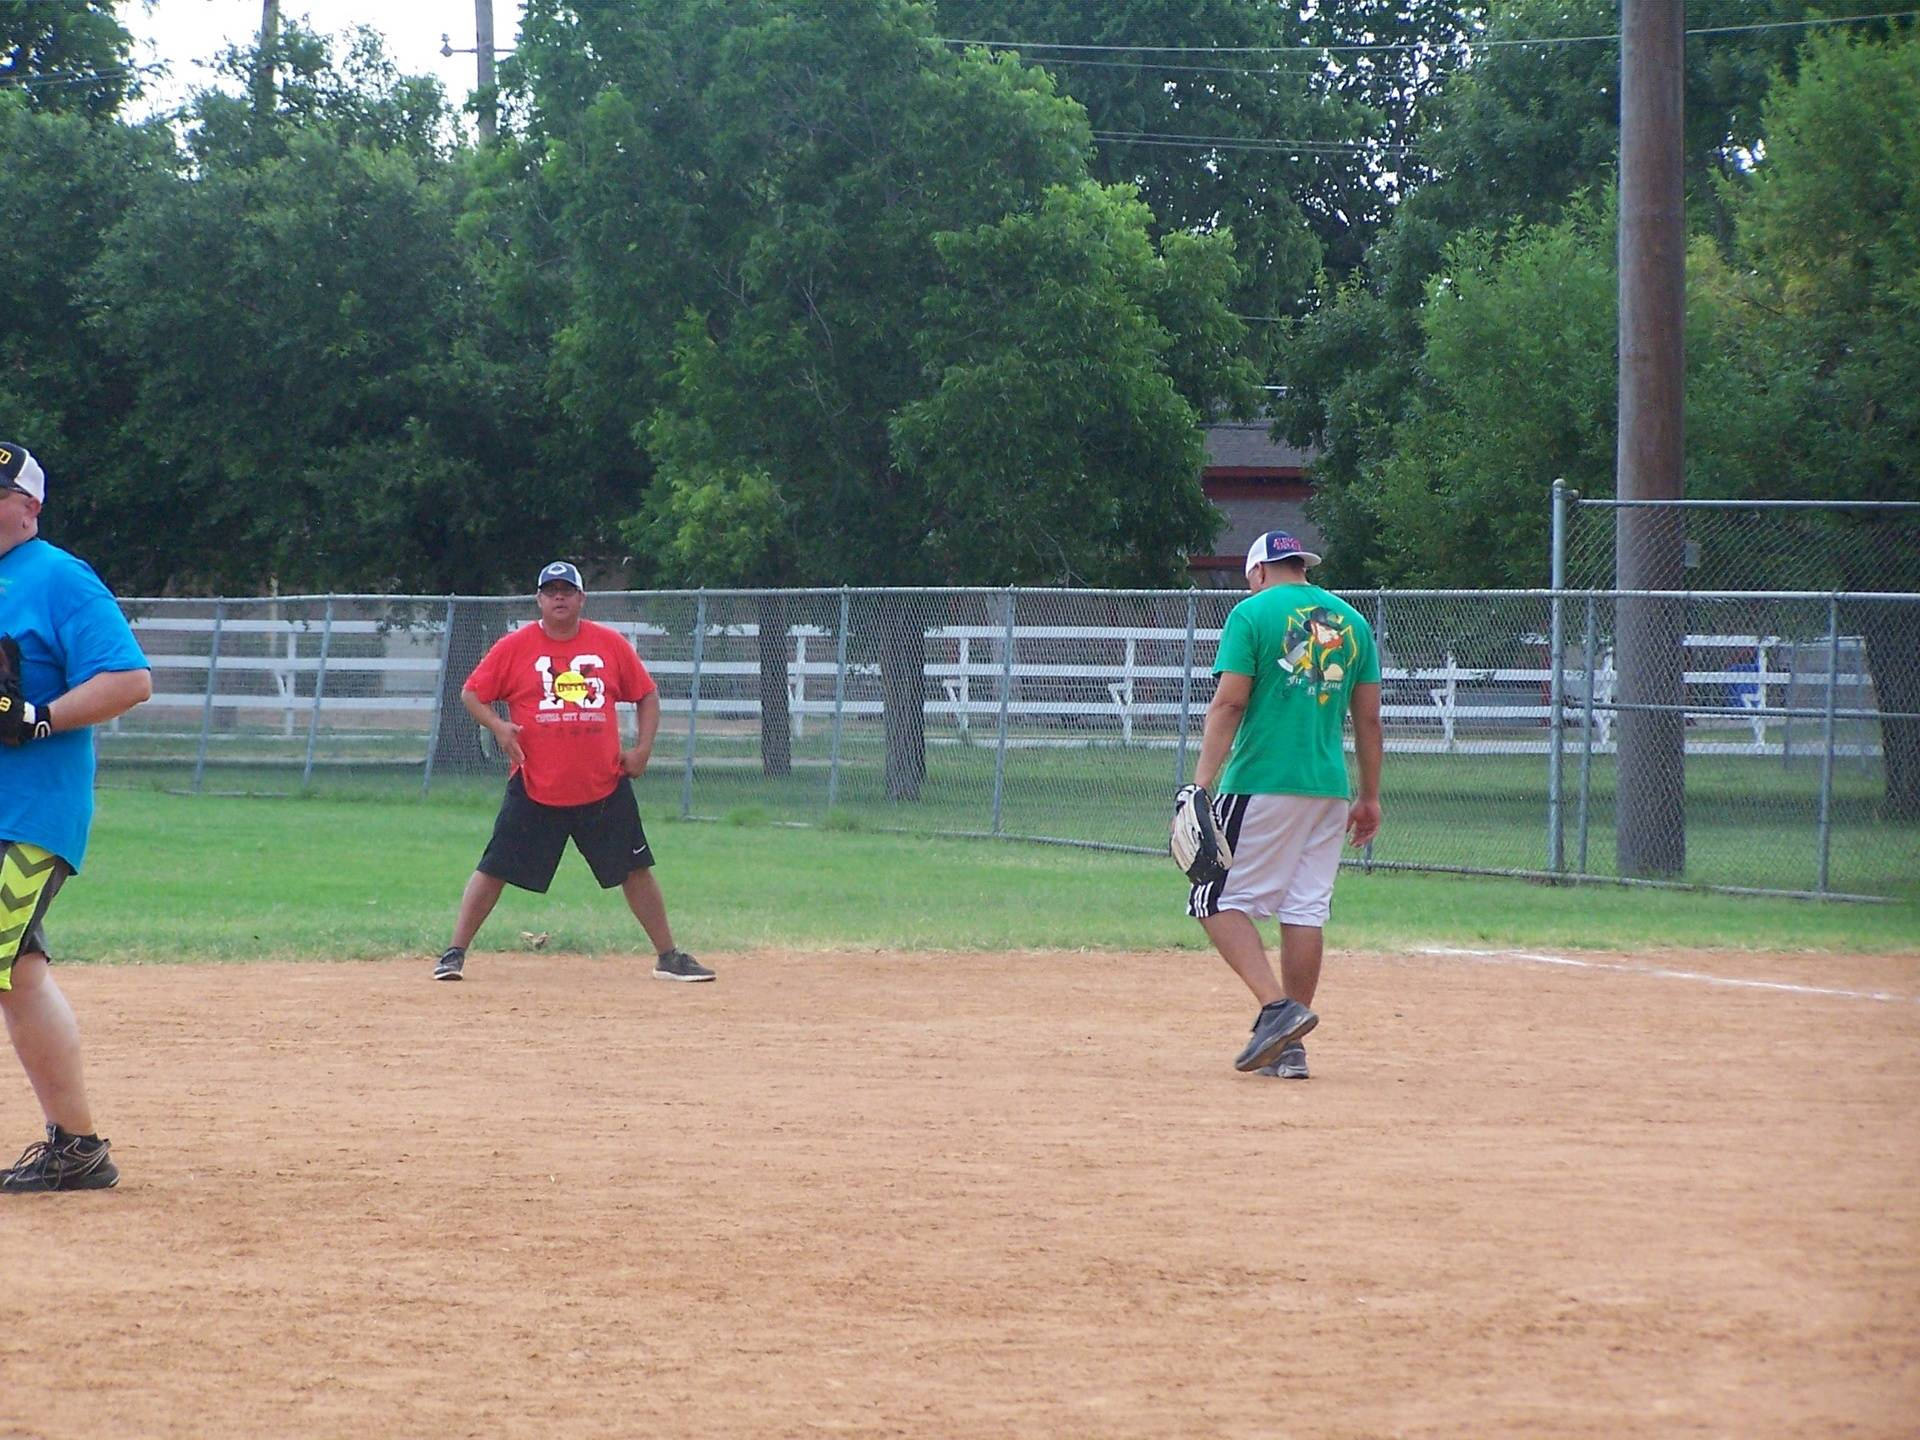 Roger Moreno outfield